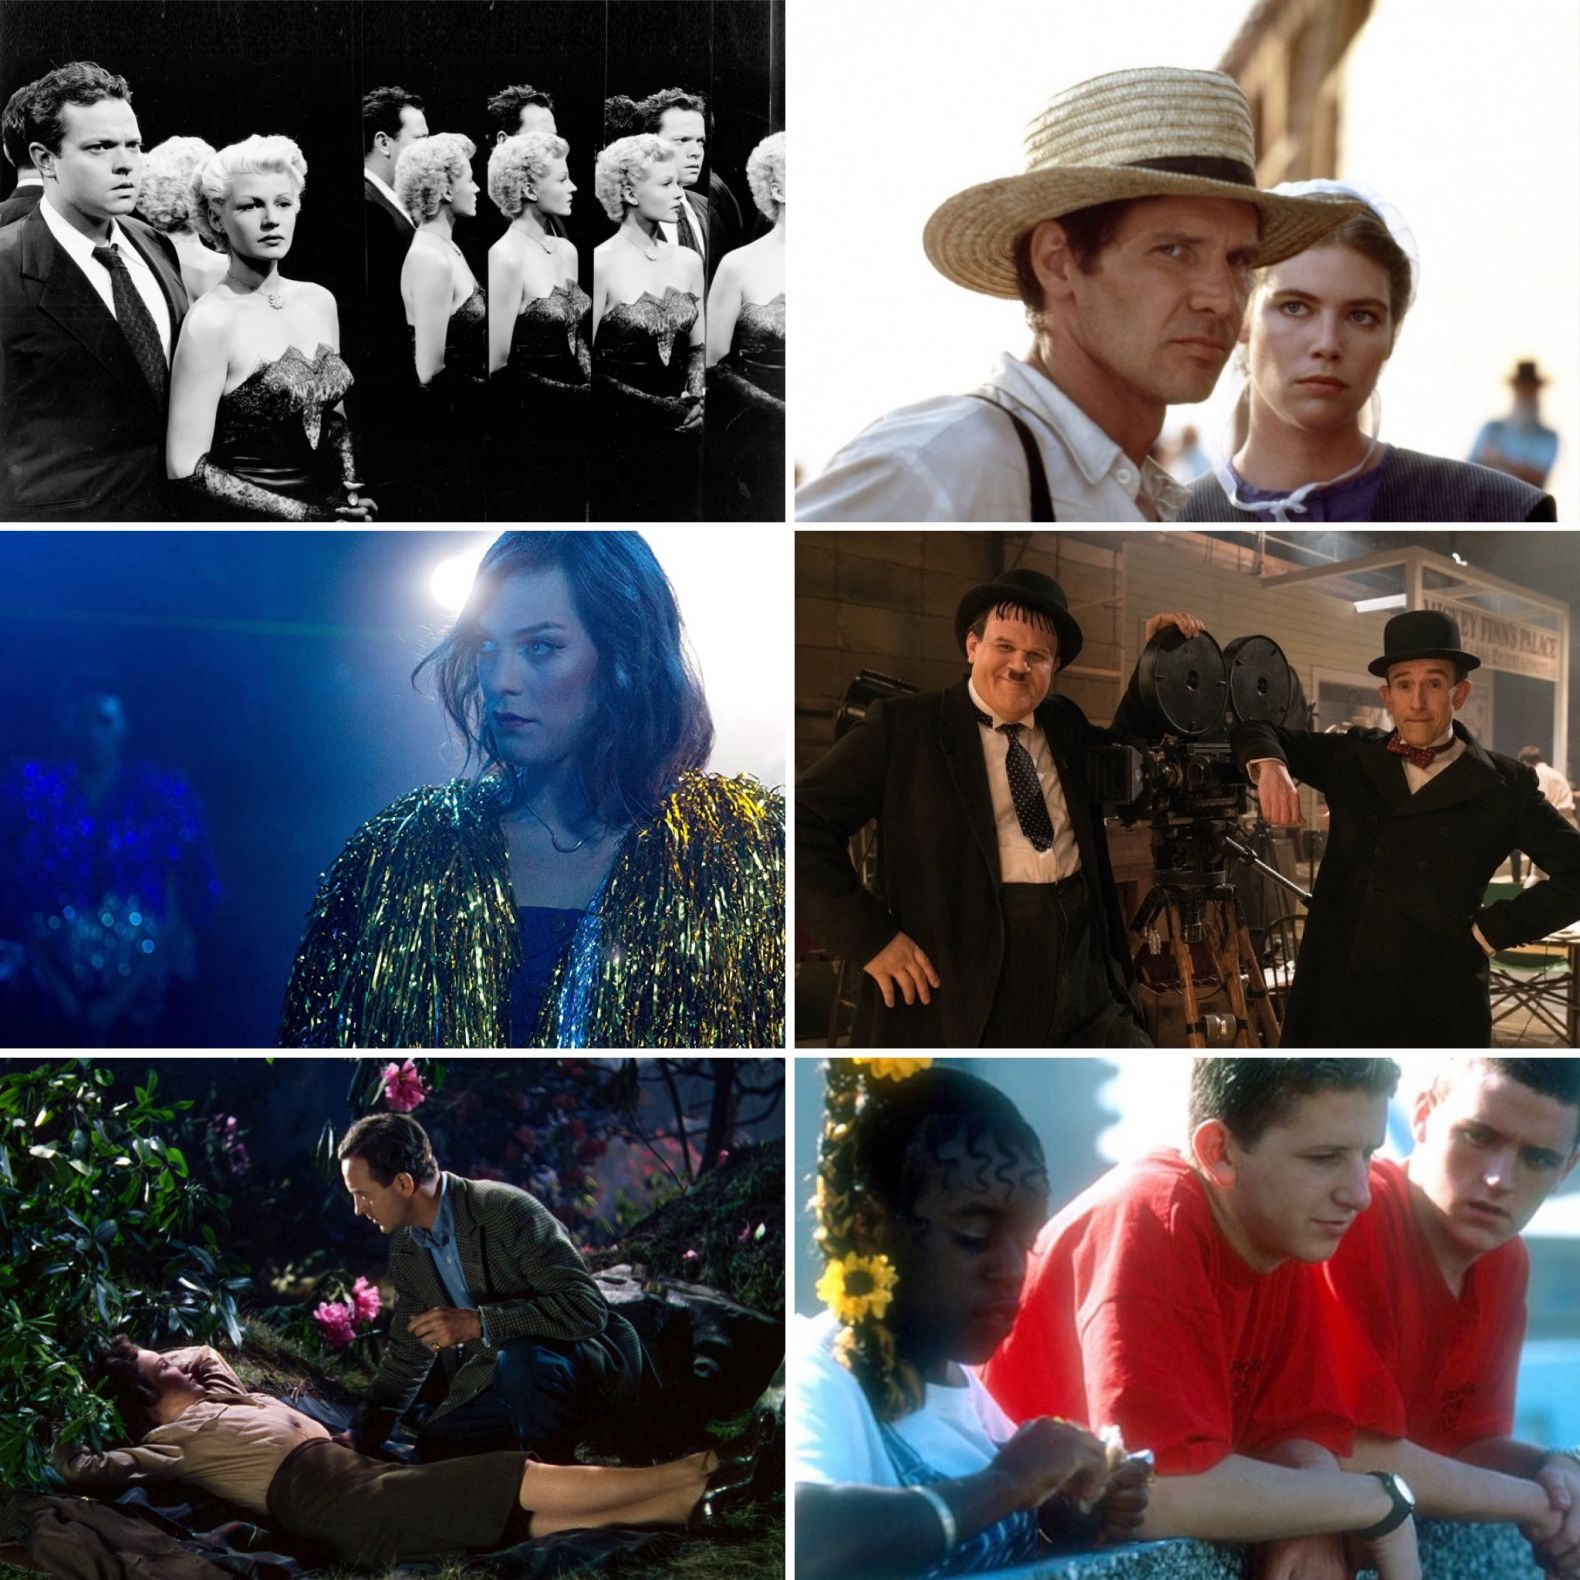 Duke Box #48: Our Guide to the Best Films on TV